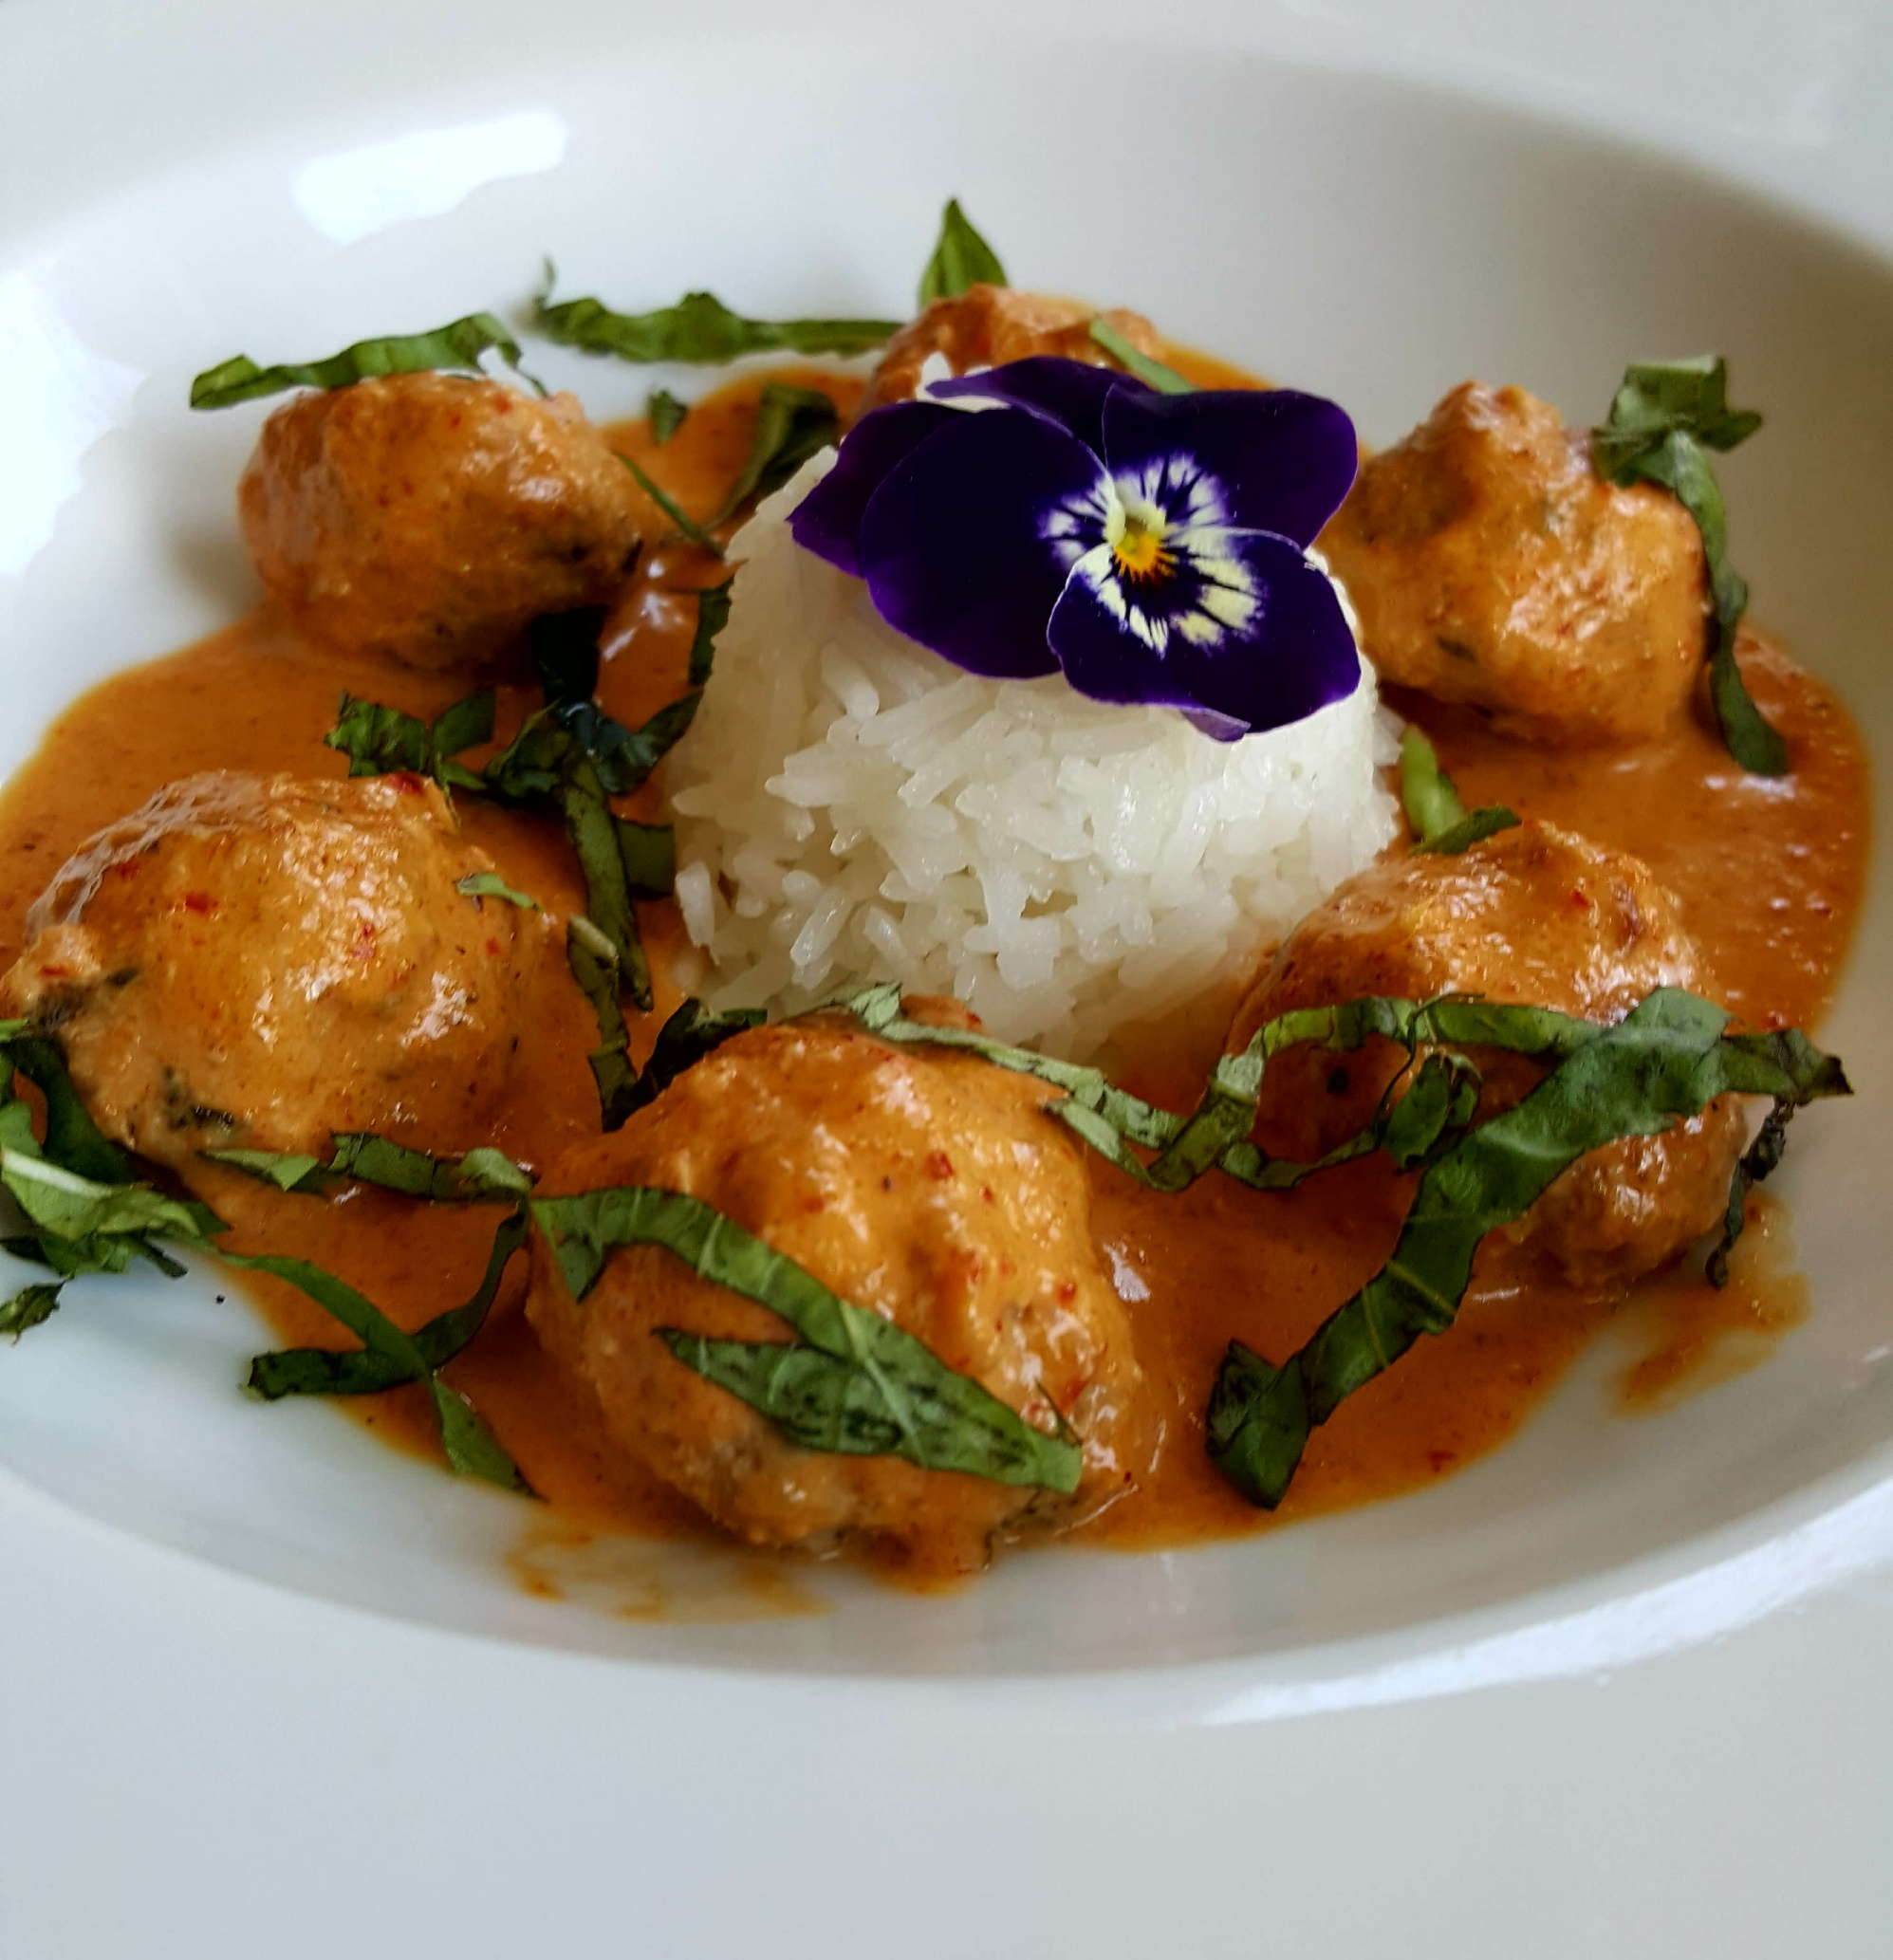 Thai Pork Meatballs with jasmine rice and red curry sauce.